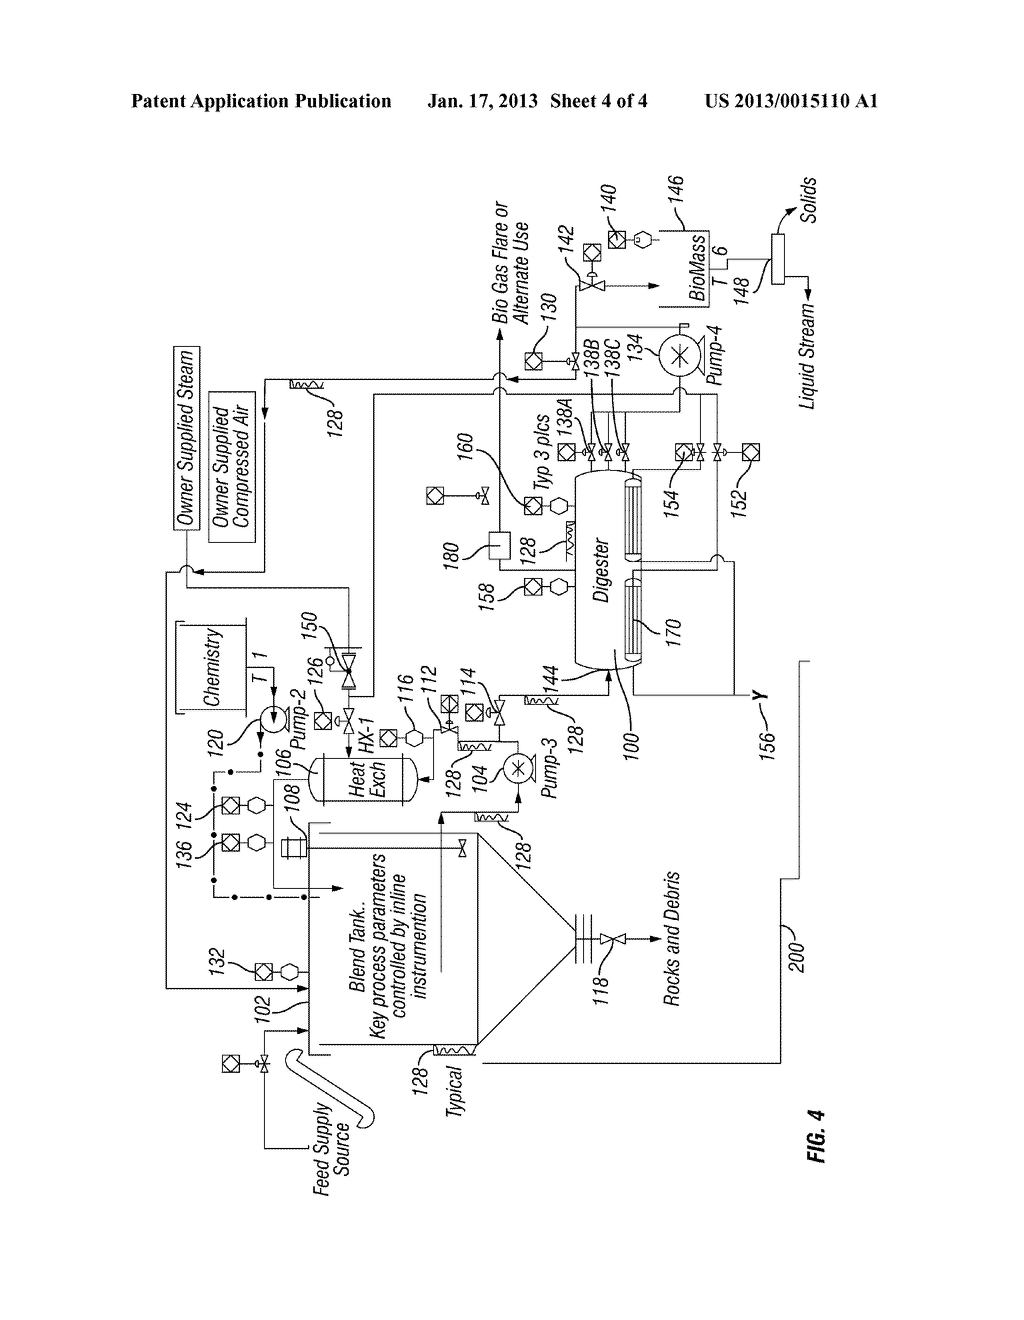 System and method for thermophilic anaerobic digester process 20130015110 05 20130015110 05 anaerobic gas diagram anaerobic gas diagram